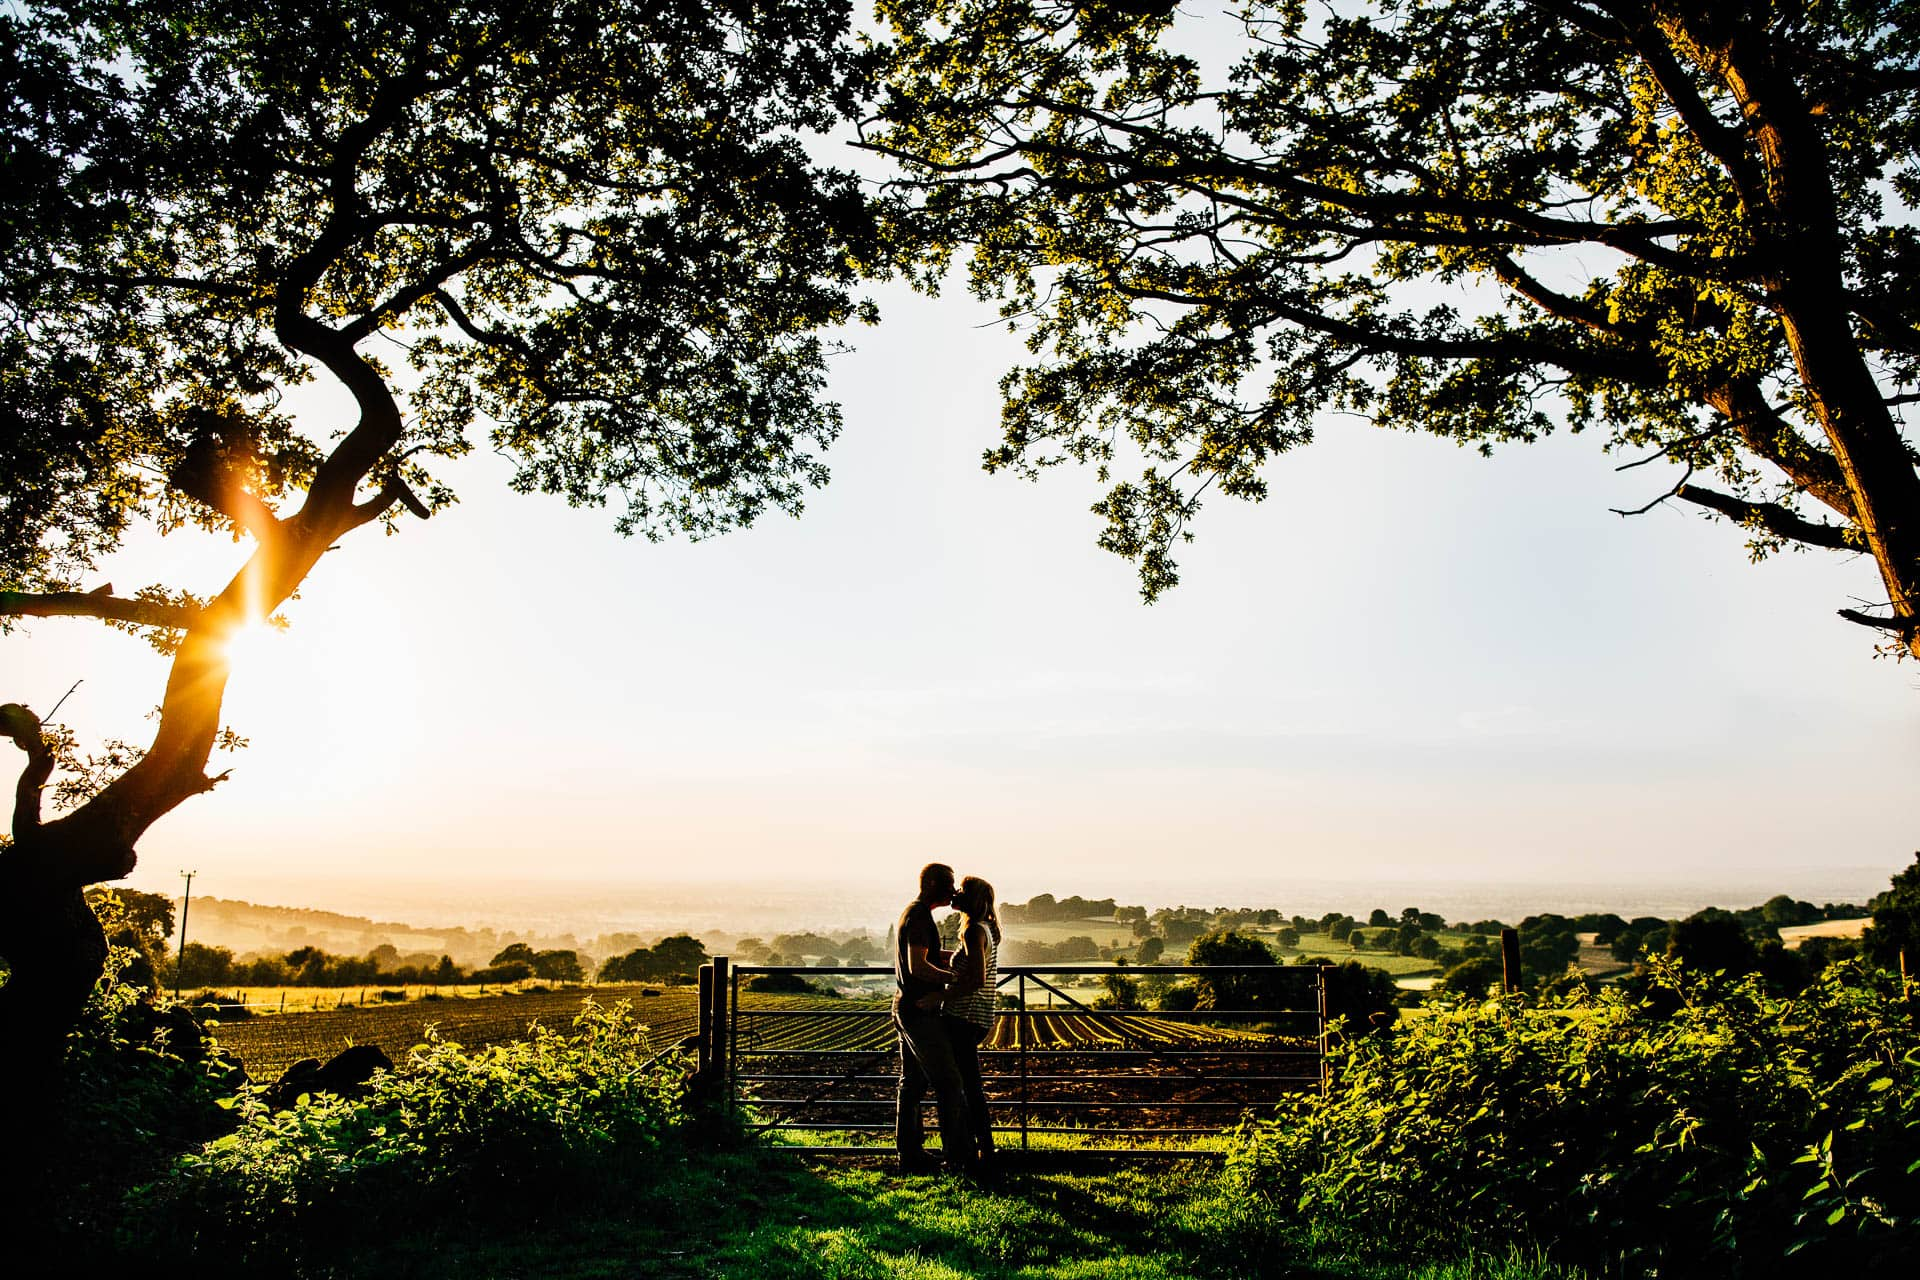 Cheshire Pre Wedding Photography - couple in gateway with hills in background